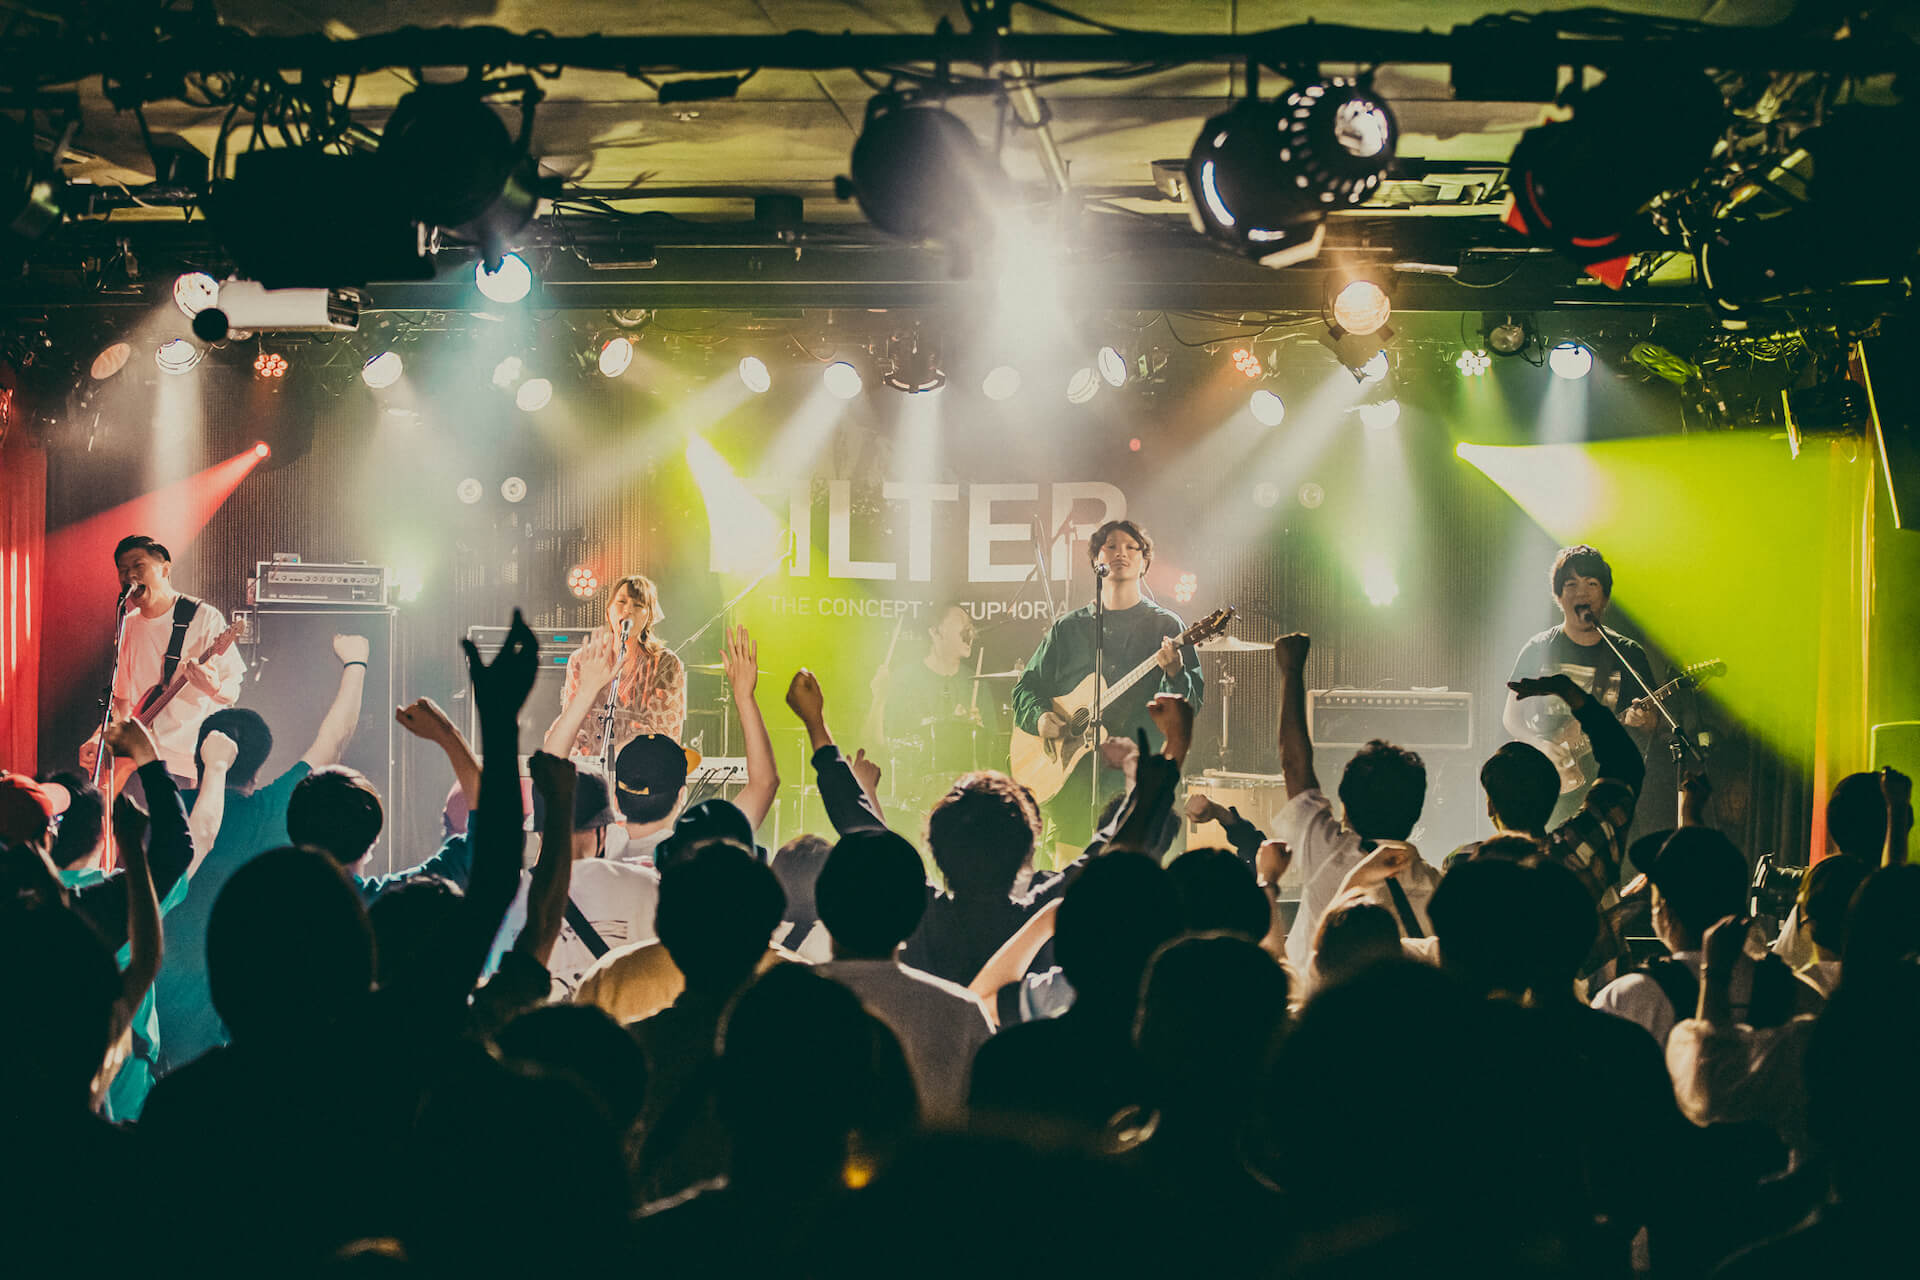 """FILTER、10年目の想いは次の旅路へ──ライブレポート:FILTER 10th Anniversary ONE MAN""""Stand By Me"""" music210628_filter-03"""